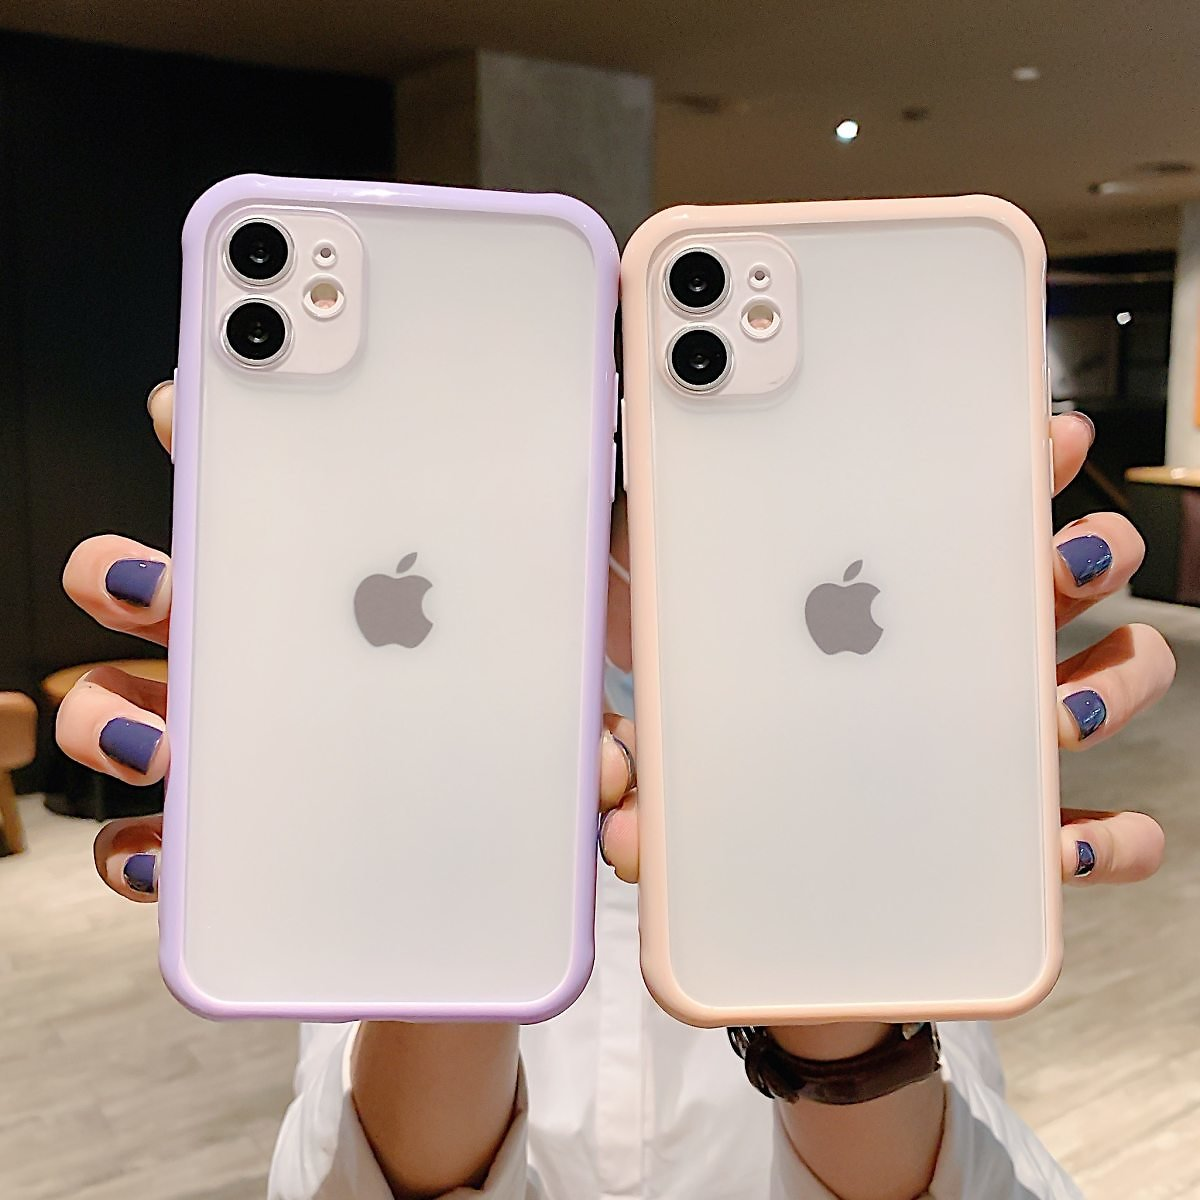 US $1.64 33% OFF|Shockproof Armor Transparent Phone Case For IPhone 12 11 Pro X Xs MAX XR 6 6s 7 8 Plus Camera Protection Candy Color Cover Case|Fitted Cases| - AliExpress